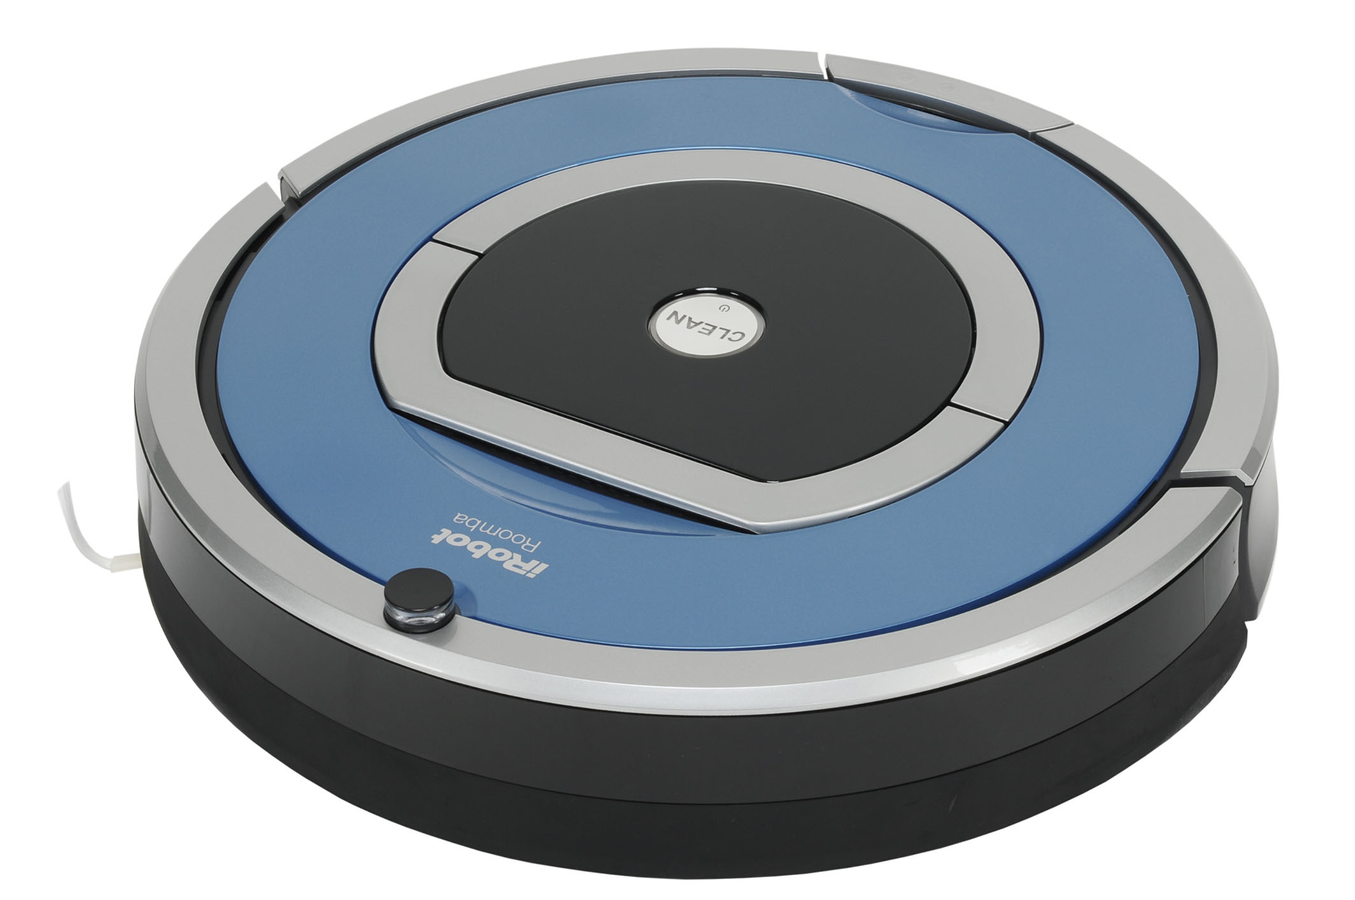 aspirateur robot irobot roomba 790 roomba 8851964 darty. Black Bedroom Furniture Sets. Home Design Ideas